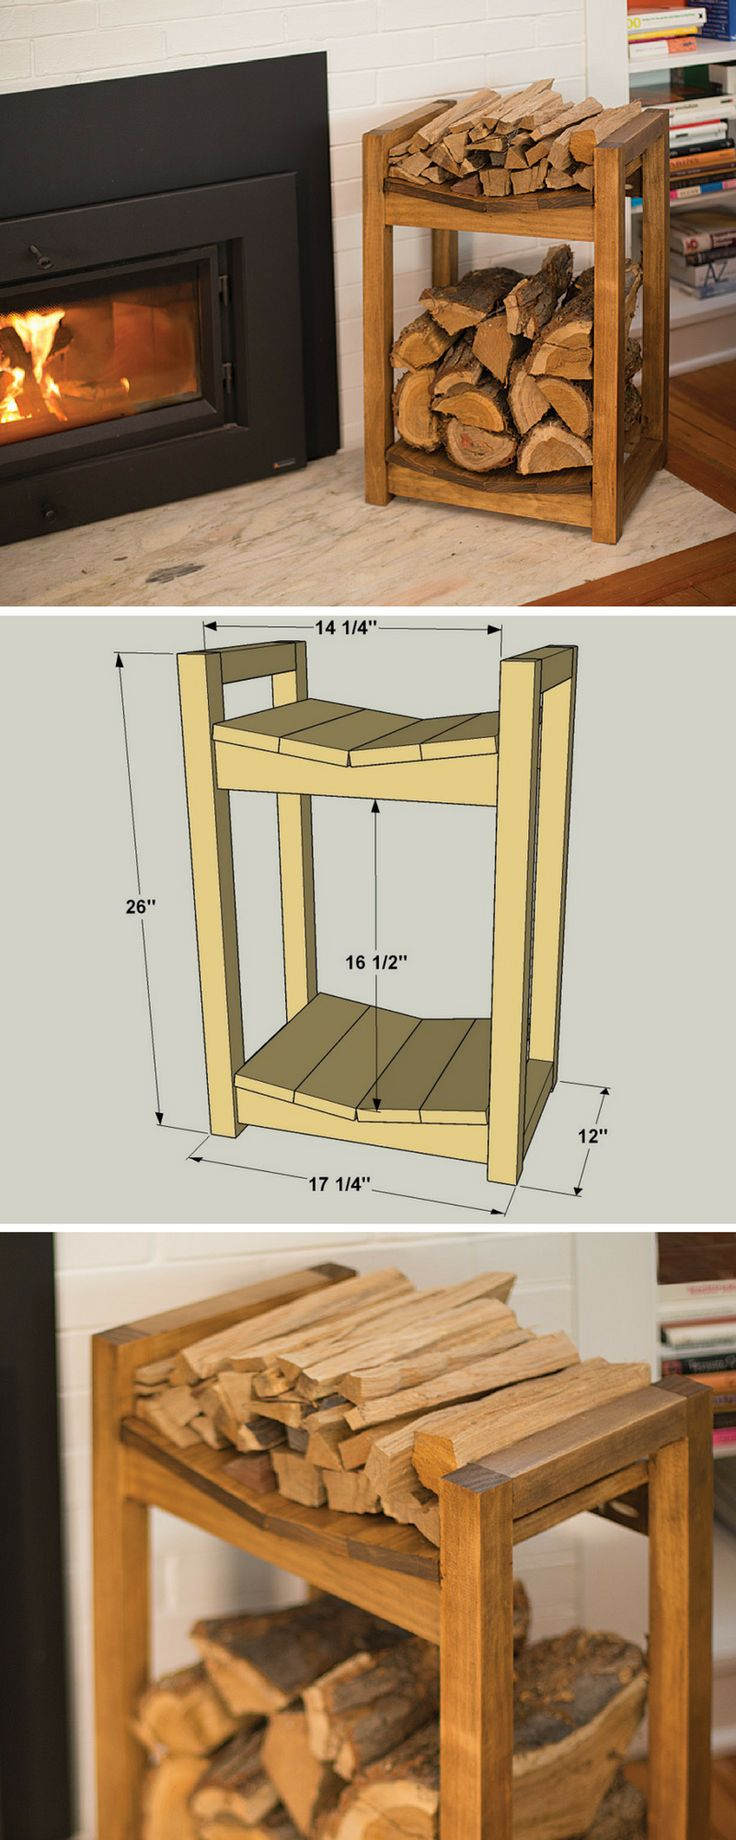 DIY Firewood Storage Rack | Free printable plans on buildsomething.com | Keep your fireplace stocked with this firewood storage rack. The lower area holds your fire logs securely, while the upper area is a great place for keeping kindling. You can build one in just a couple of hours using four boards, a miter saw (or circular saw), a jigsaw, a drill, and a Kreg Jig.